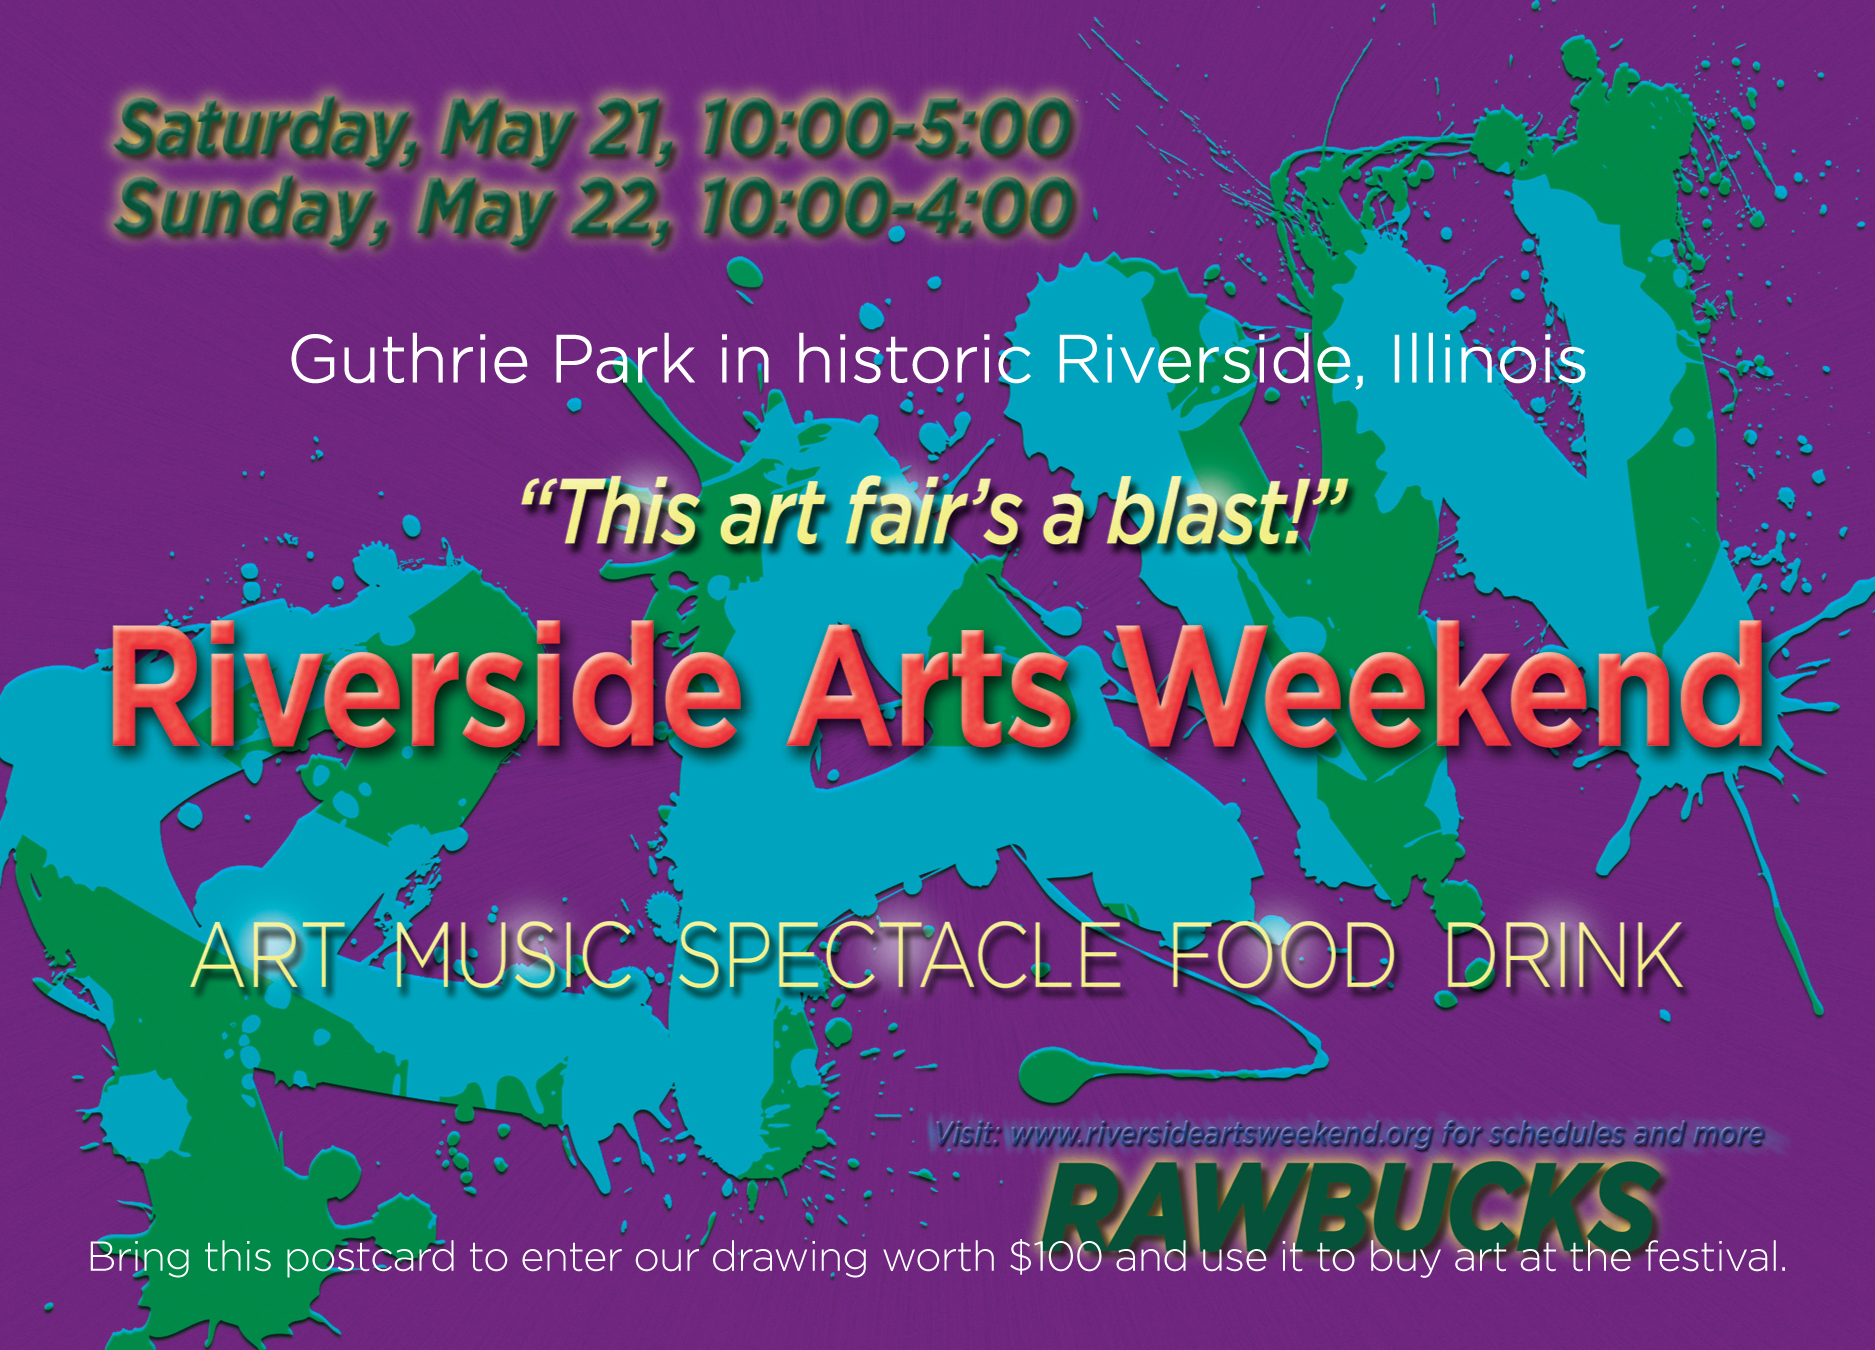 Riverside Arts Weekend 2016 Frederick Law Olmsted Society